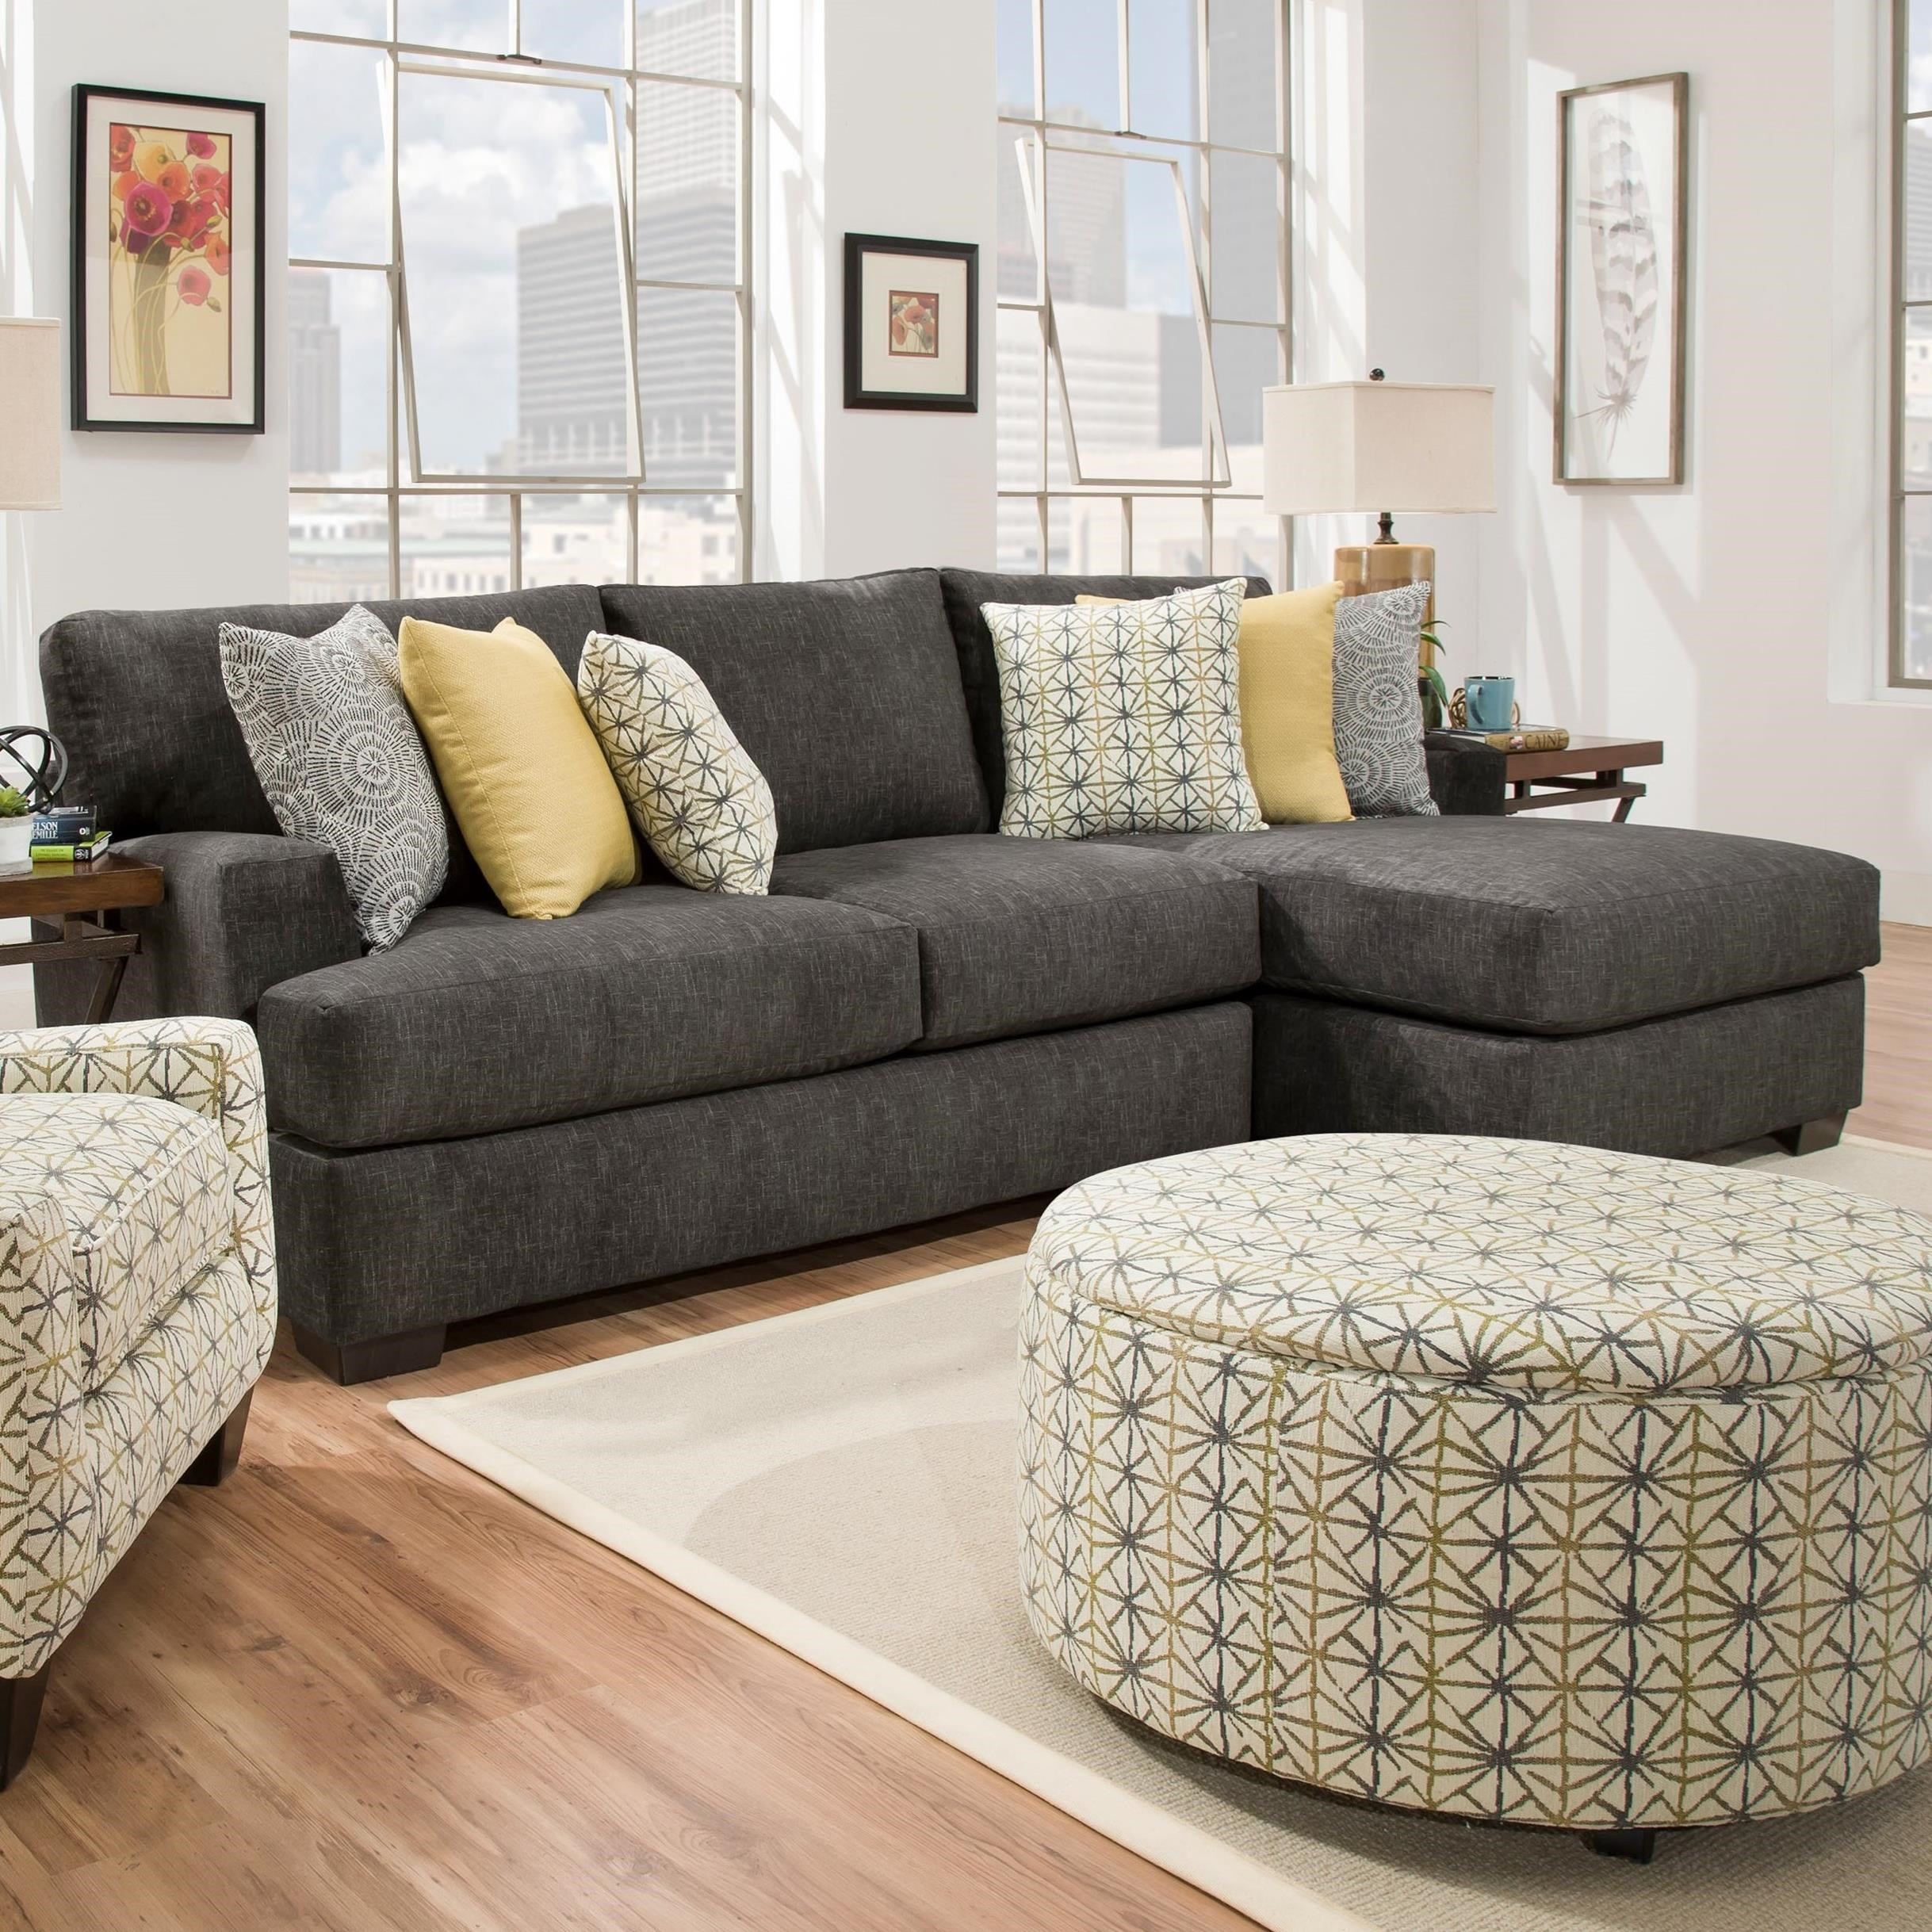 29C0 Three Seat Sectional with Chaise by Corinthian at Story & Lee Furniture